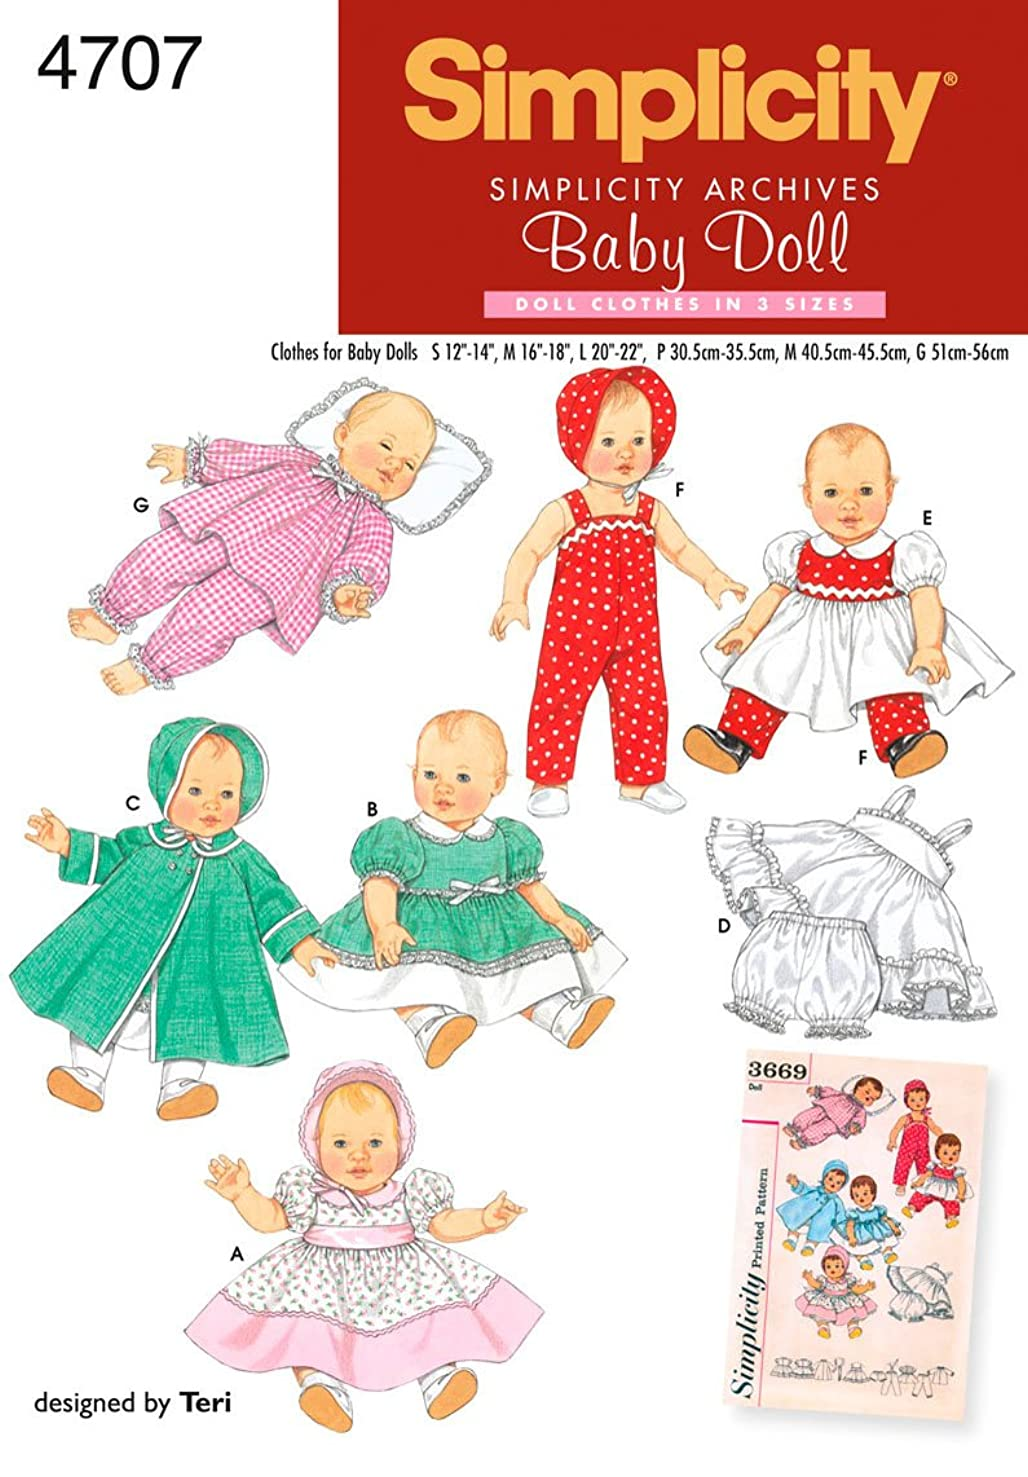 Simplicity 4707 Vintage Baby Doll Clothing Sewing Patterns for Girls by Teri, A (S-L)